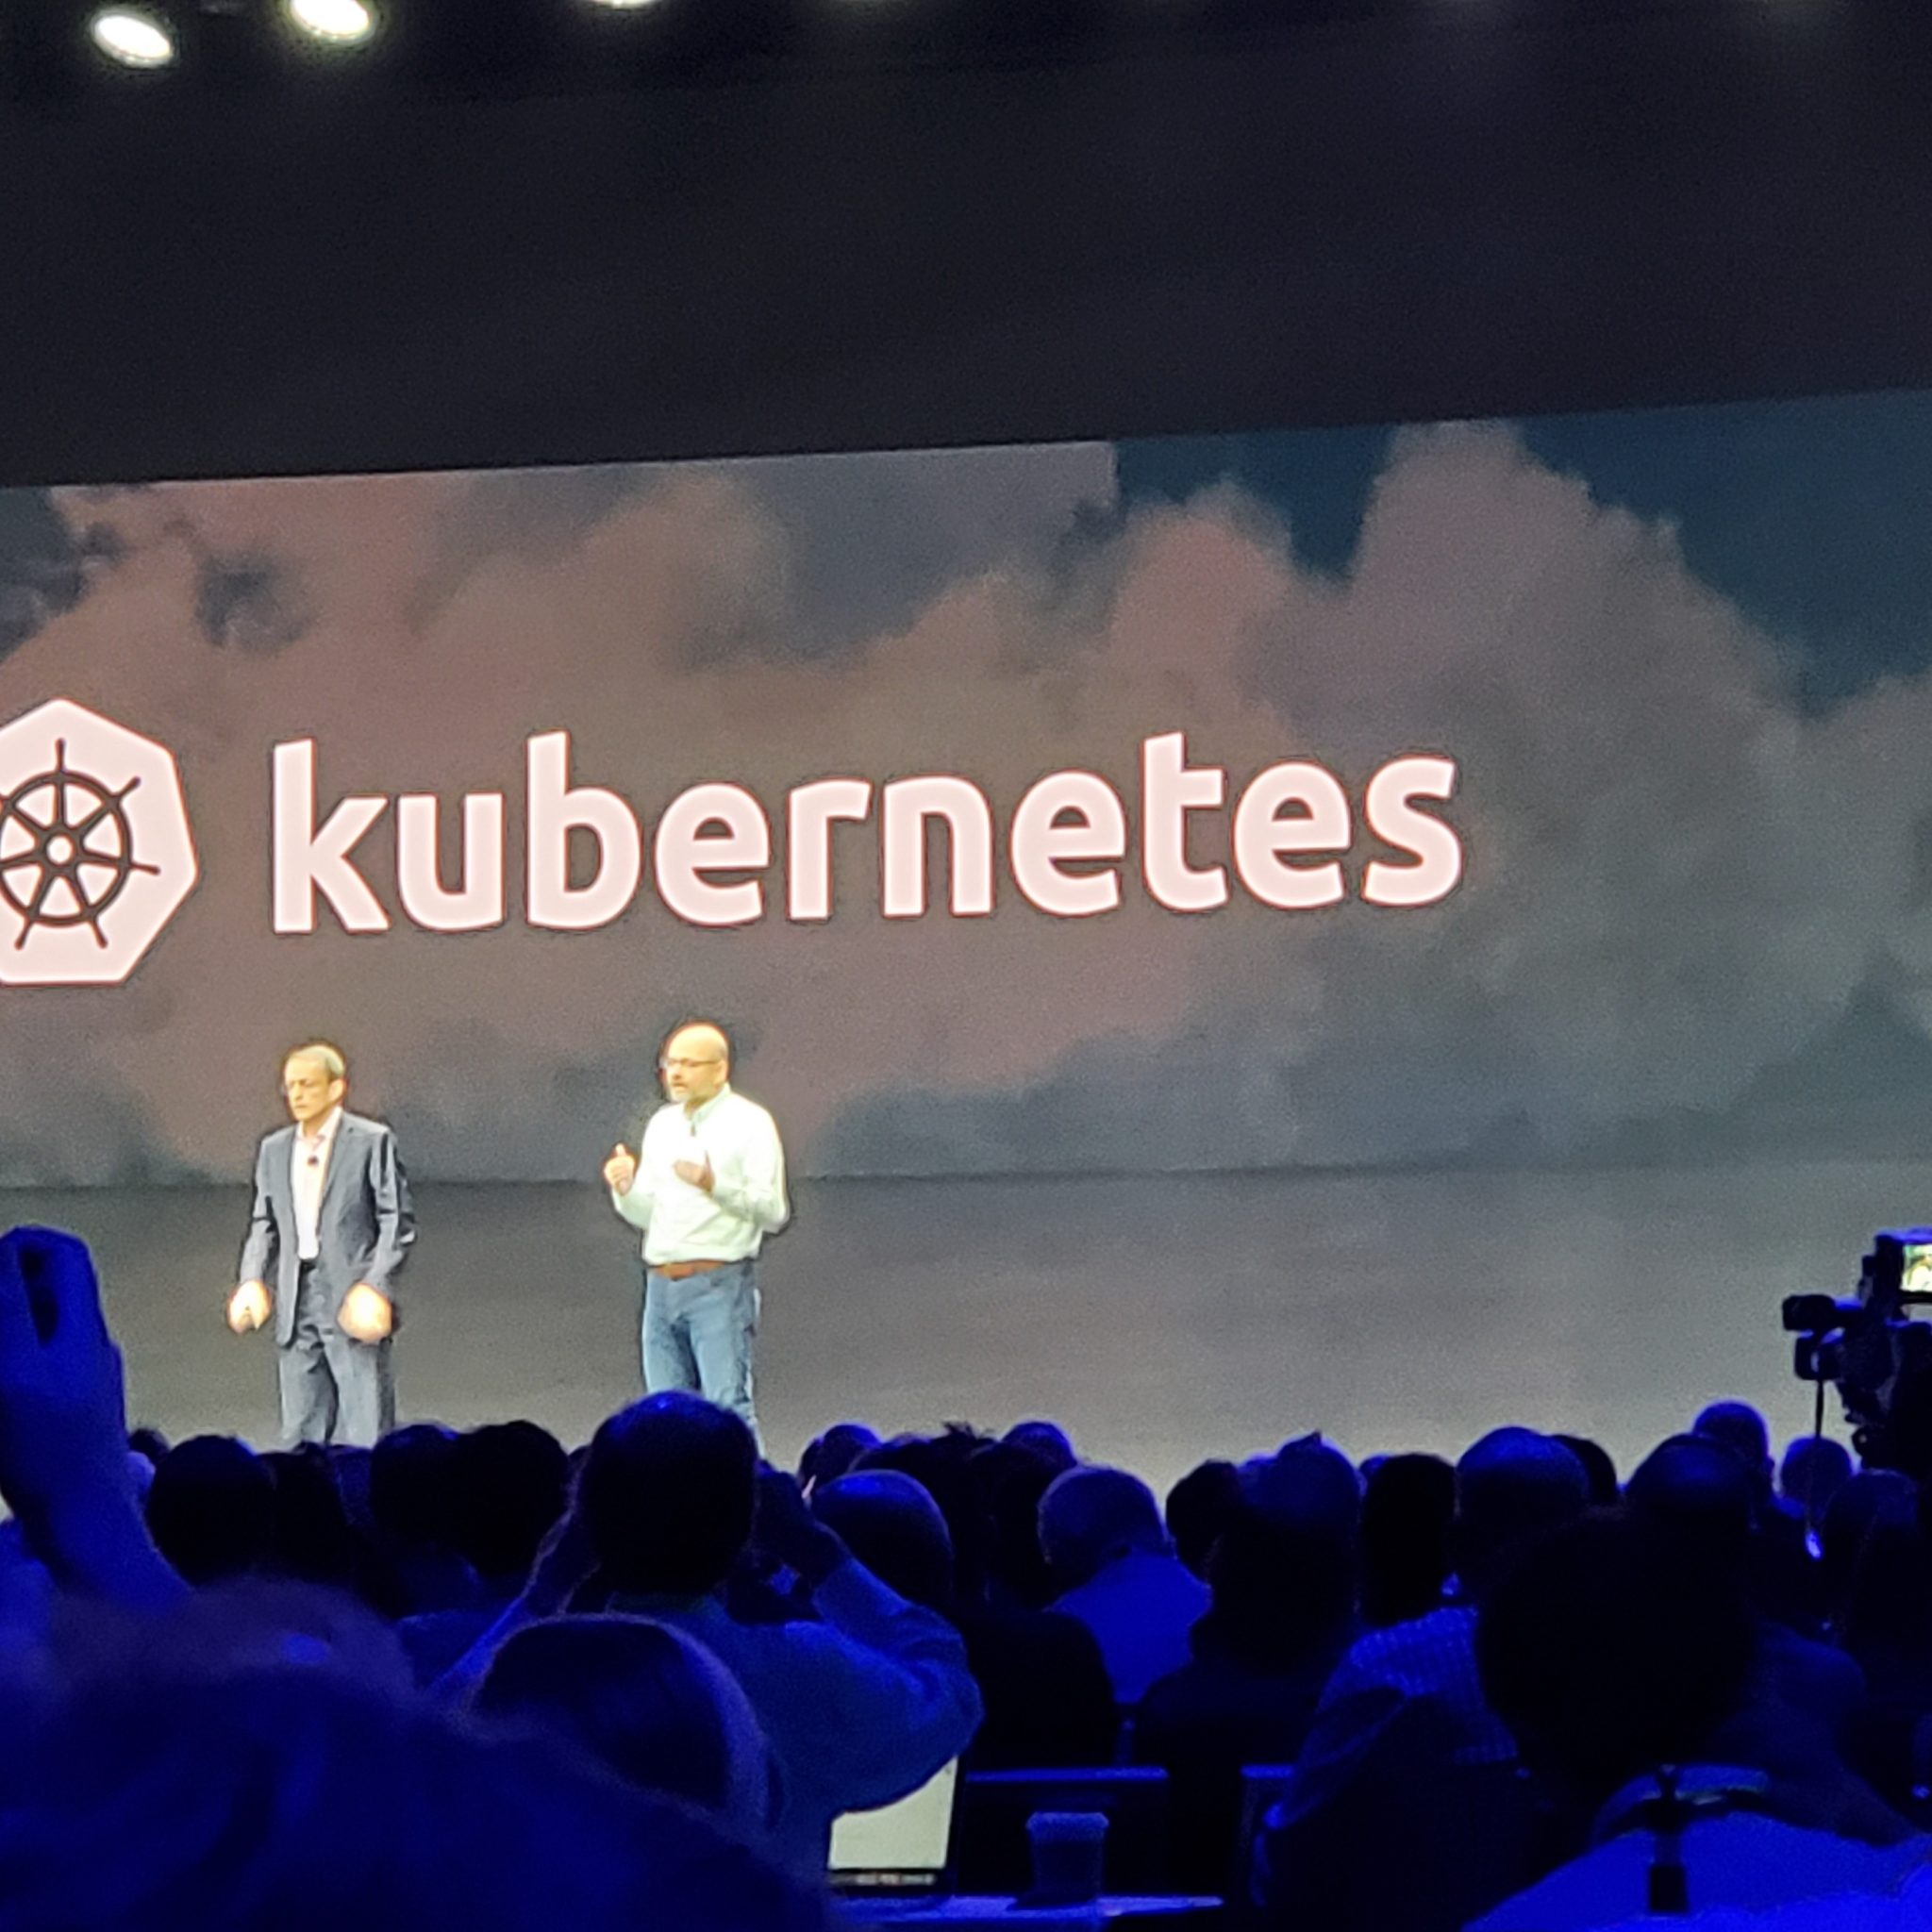 Build, run, manage: VMware CEO lays out Kubernetes strategy